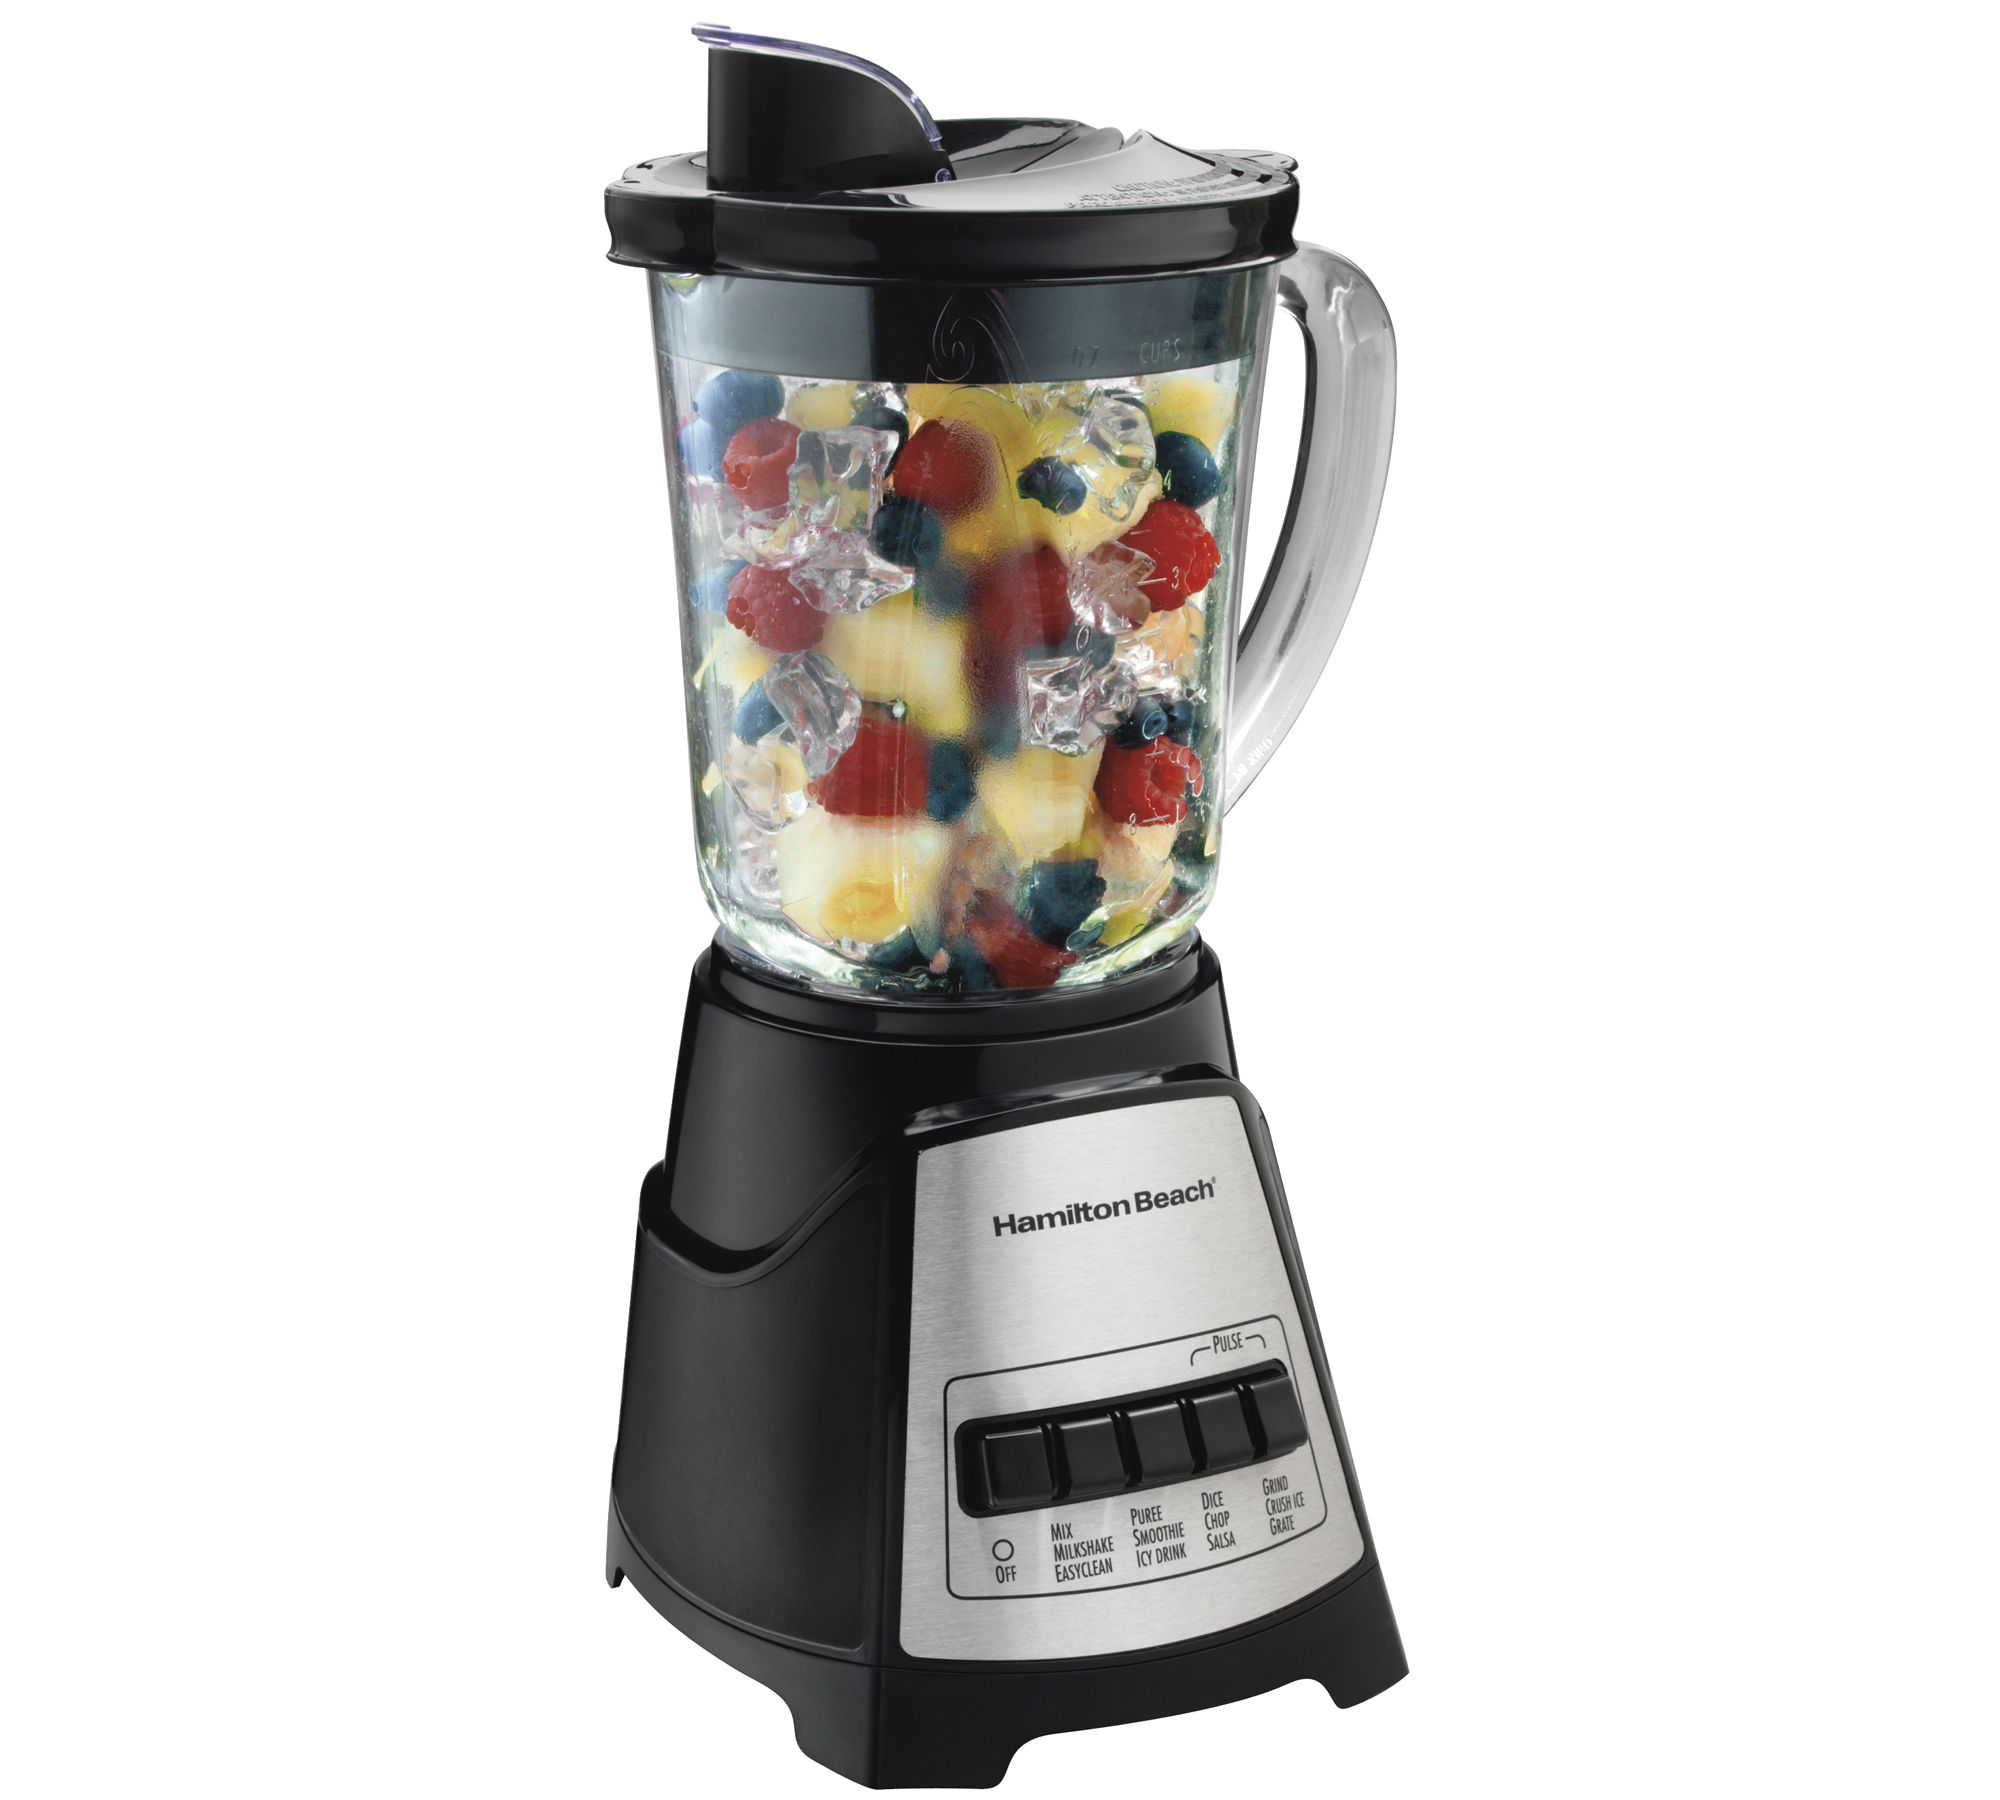 Hamilton Beach Wave Crusher Glass Jar Blender - Black